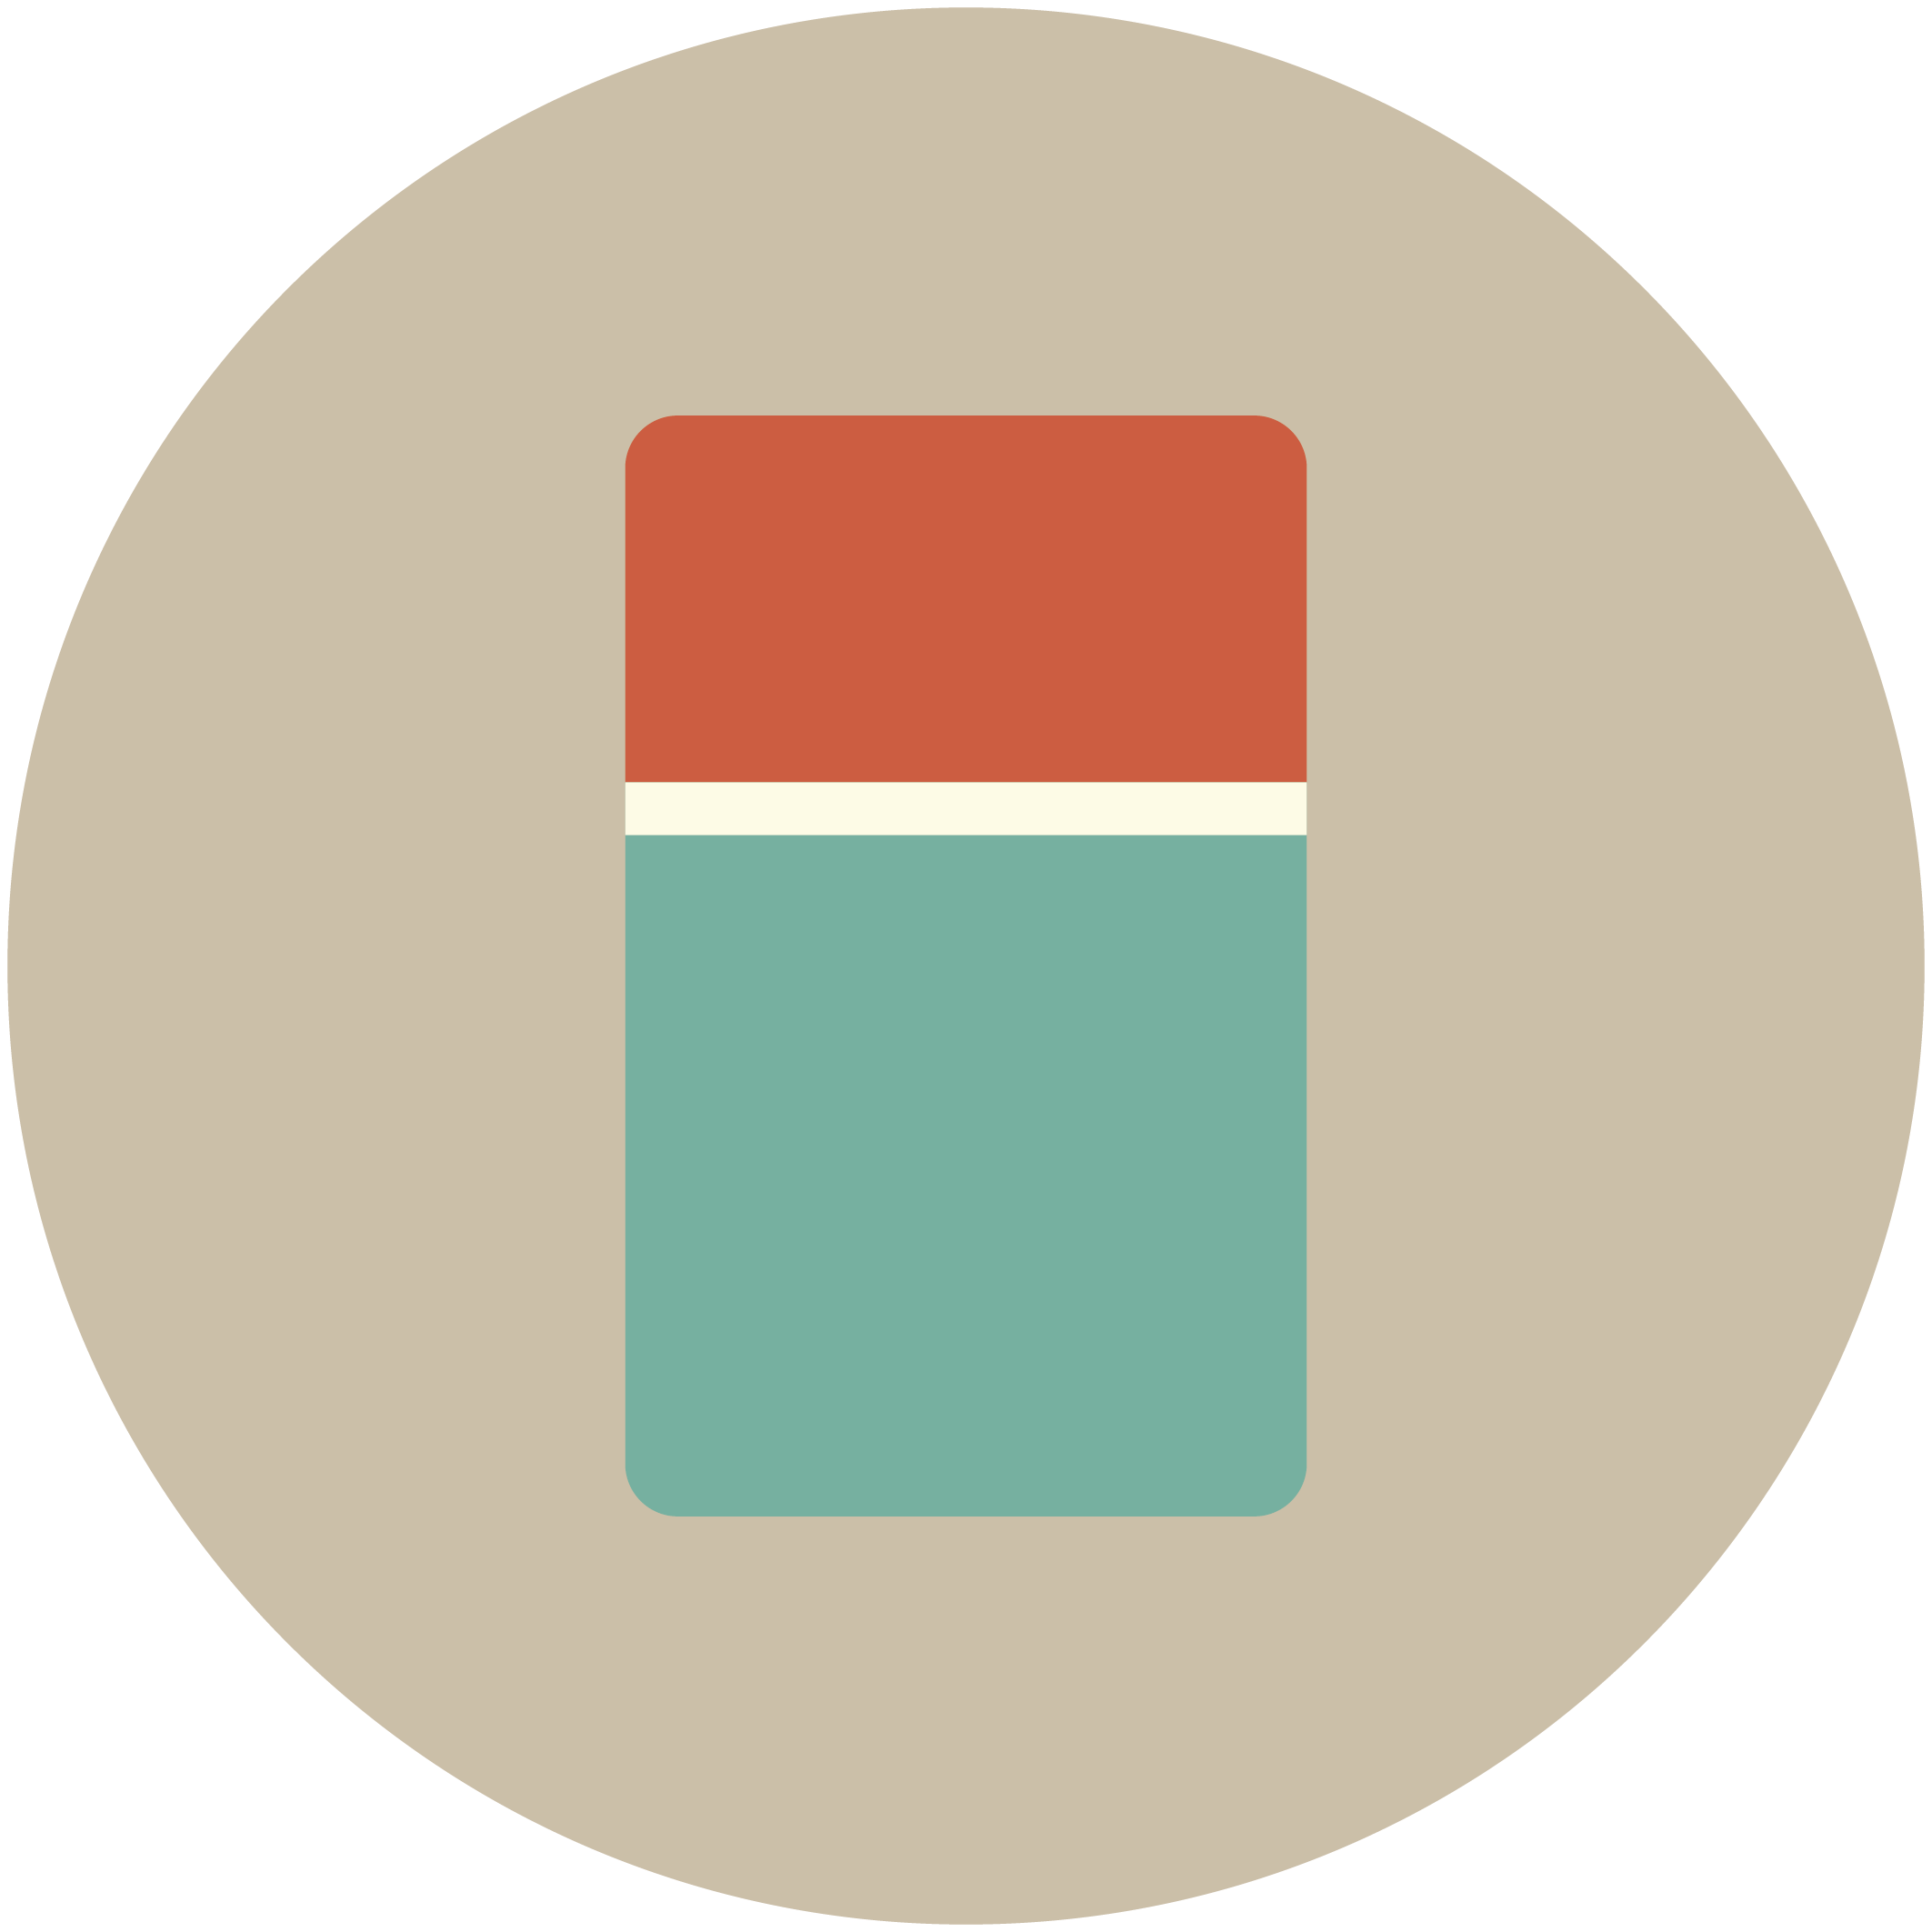 Eraser clipart red. Icon page png ico